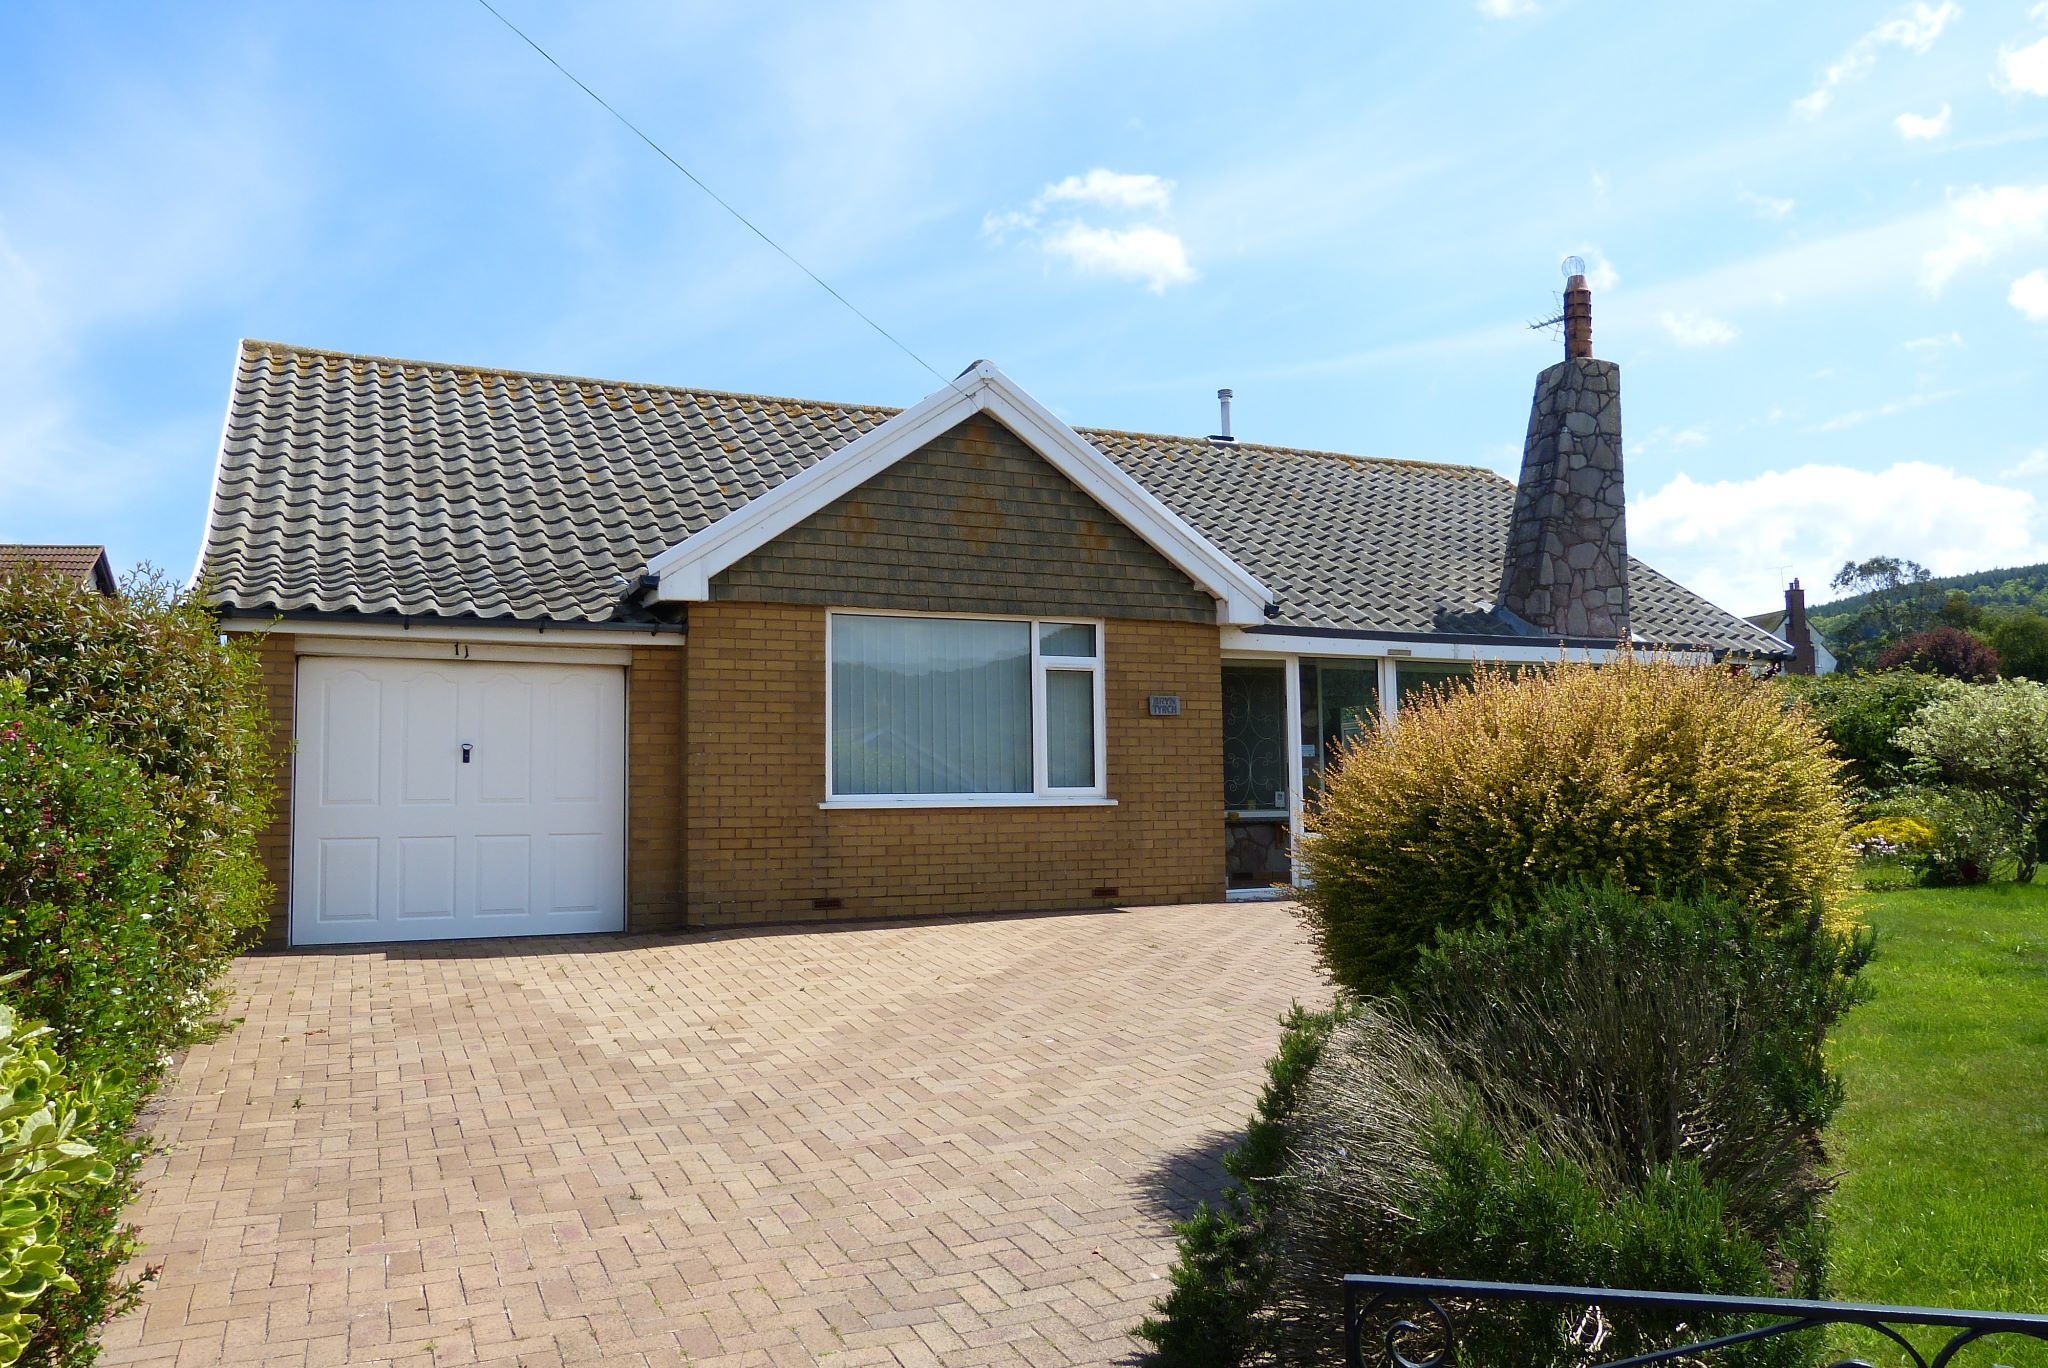 2 bedroom detached bungalow SSTC in Abergele - Photograph 10